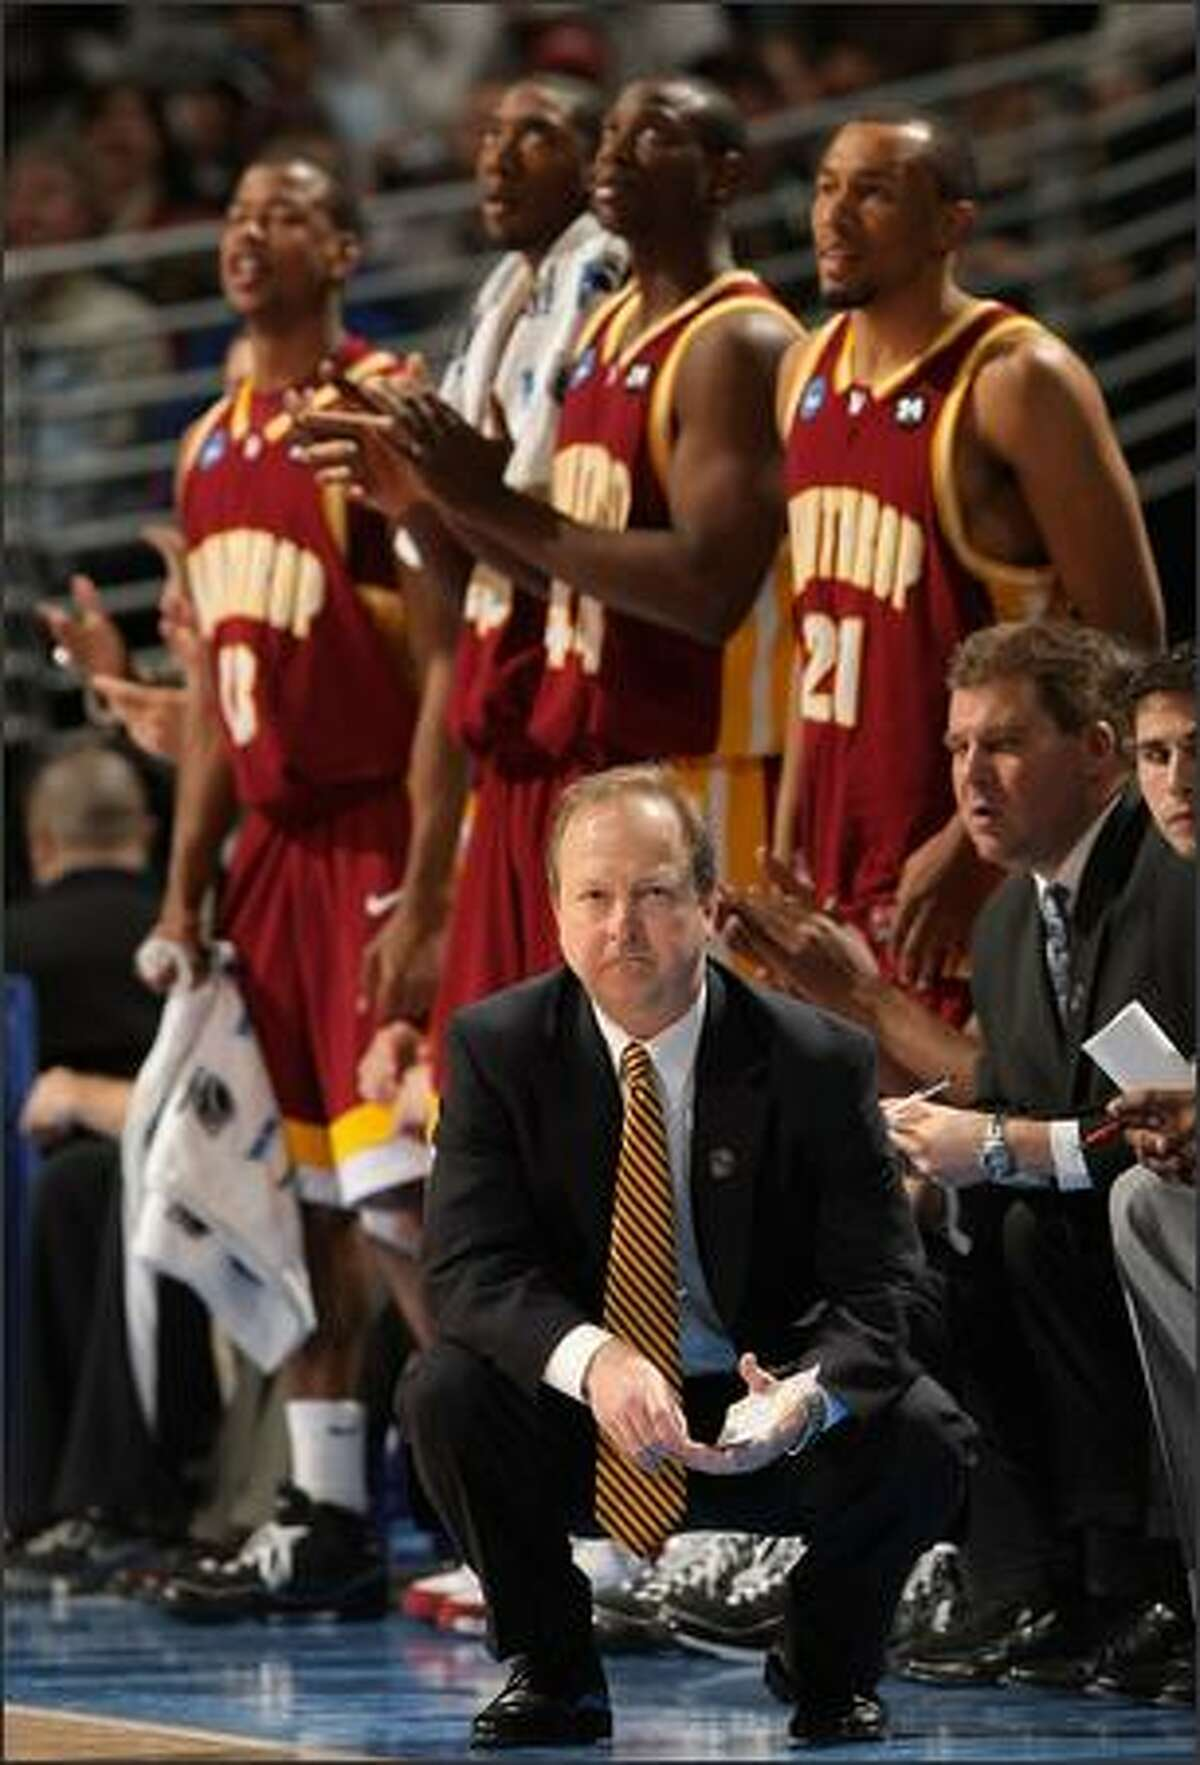 Head coach Randy Peele of the Winthrop Eagles calls a play during the first round game of the East Regional against the Washington St. Cougars as part of the 2008 NCAA Men's Basketball Tournament at Pepsi Center in Denver, Colorado. Photo by Doug Pensinger/Getty Images